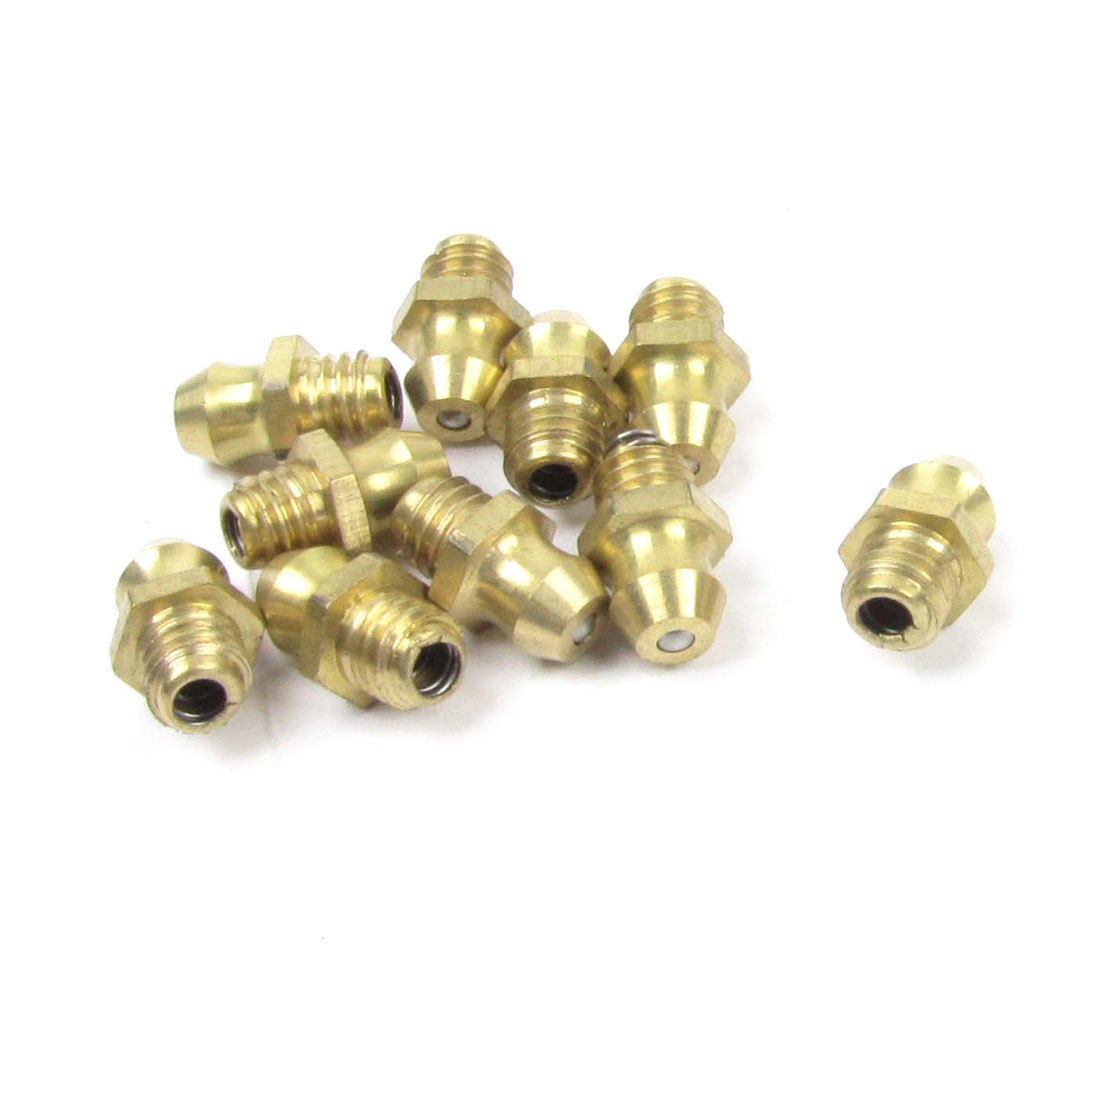 10 Pcs Metal 6mm Threaded Straight Grease Nipple Fittings Nozzles